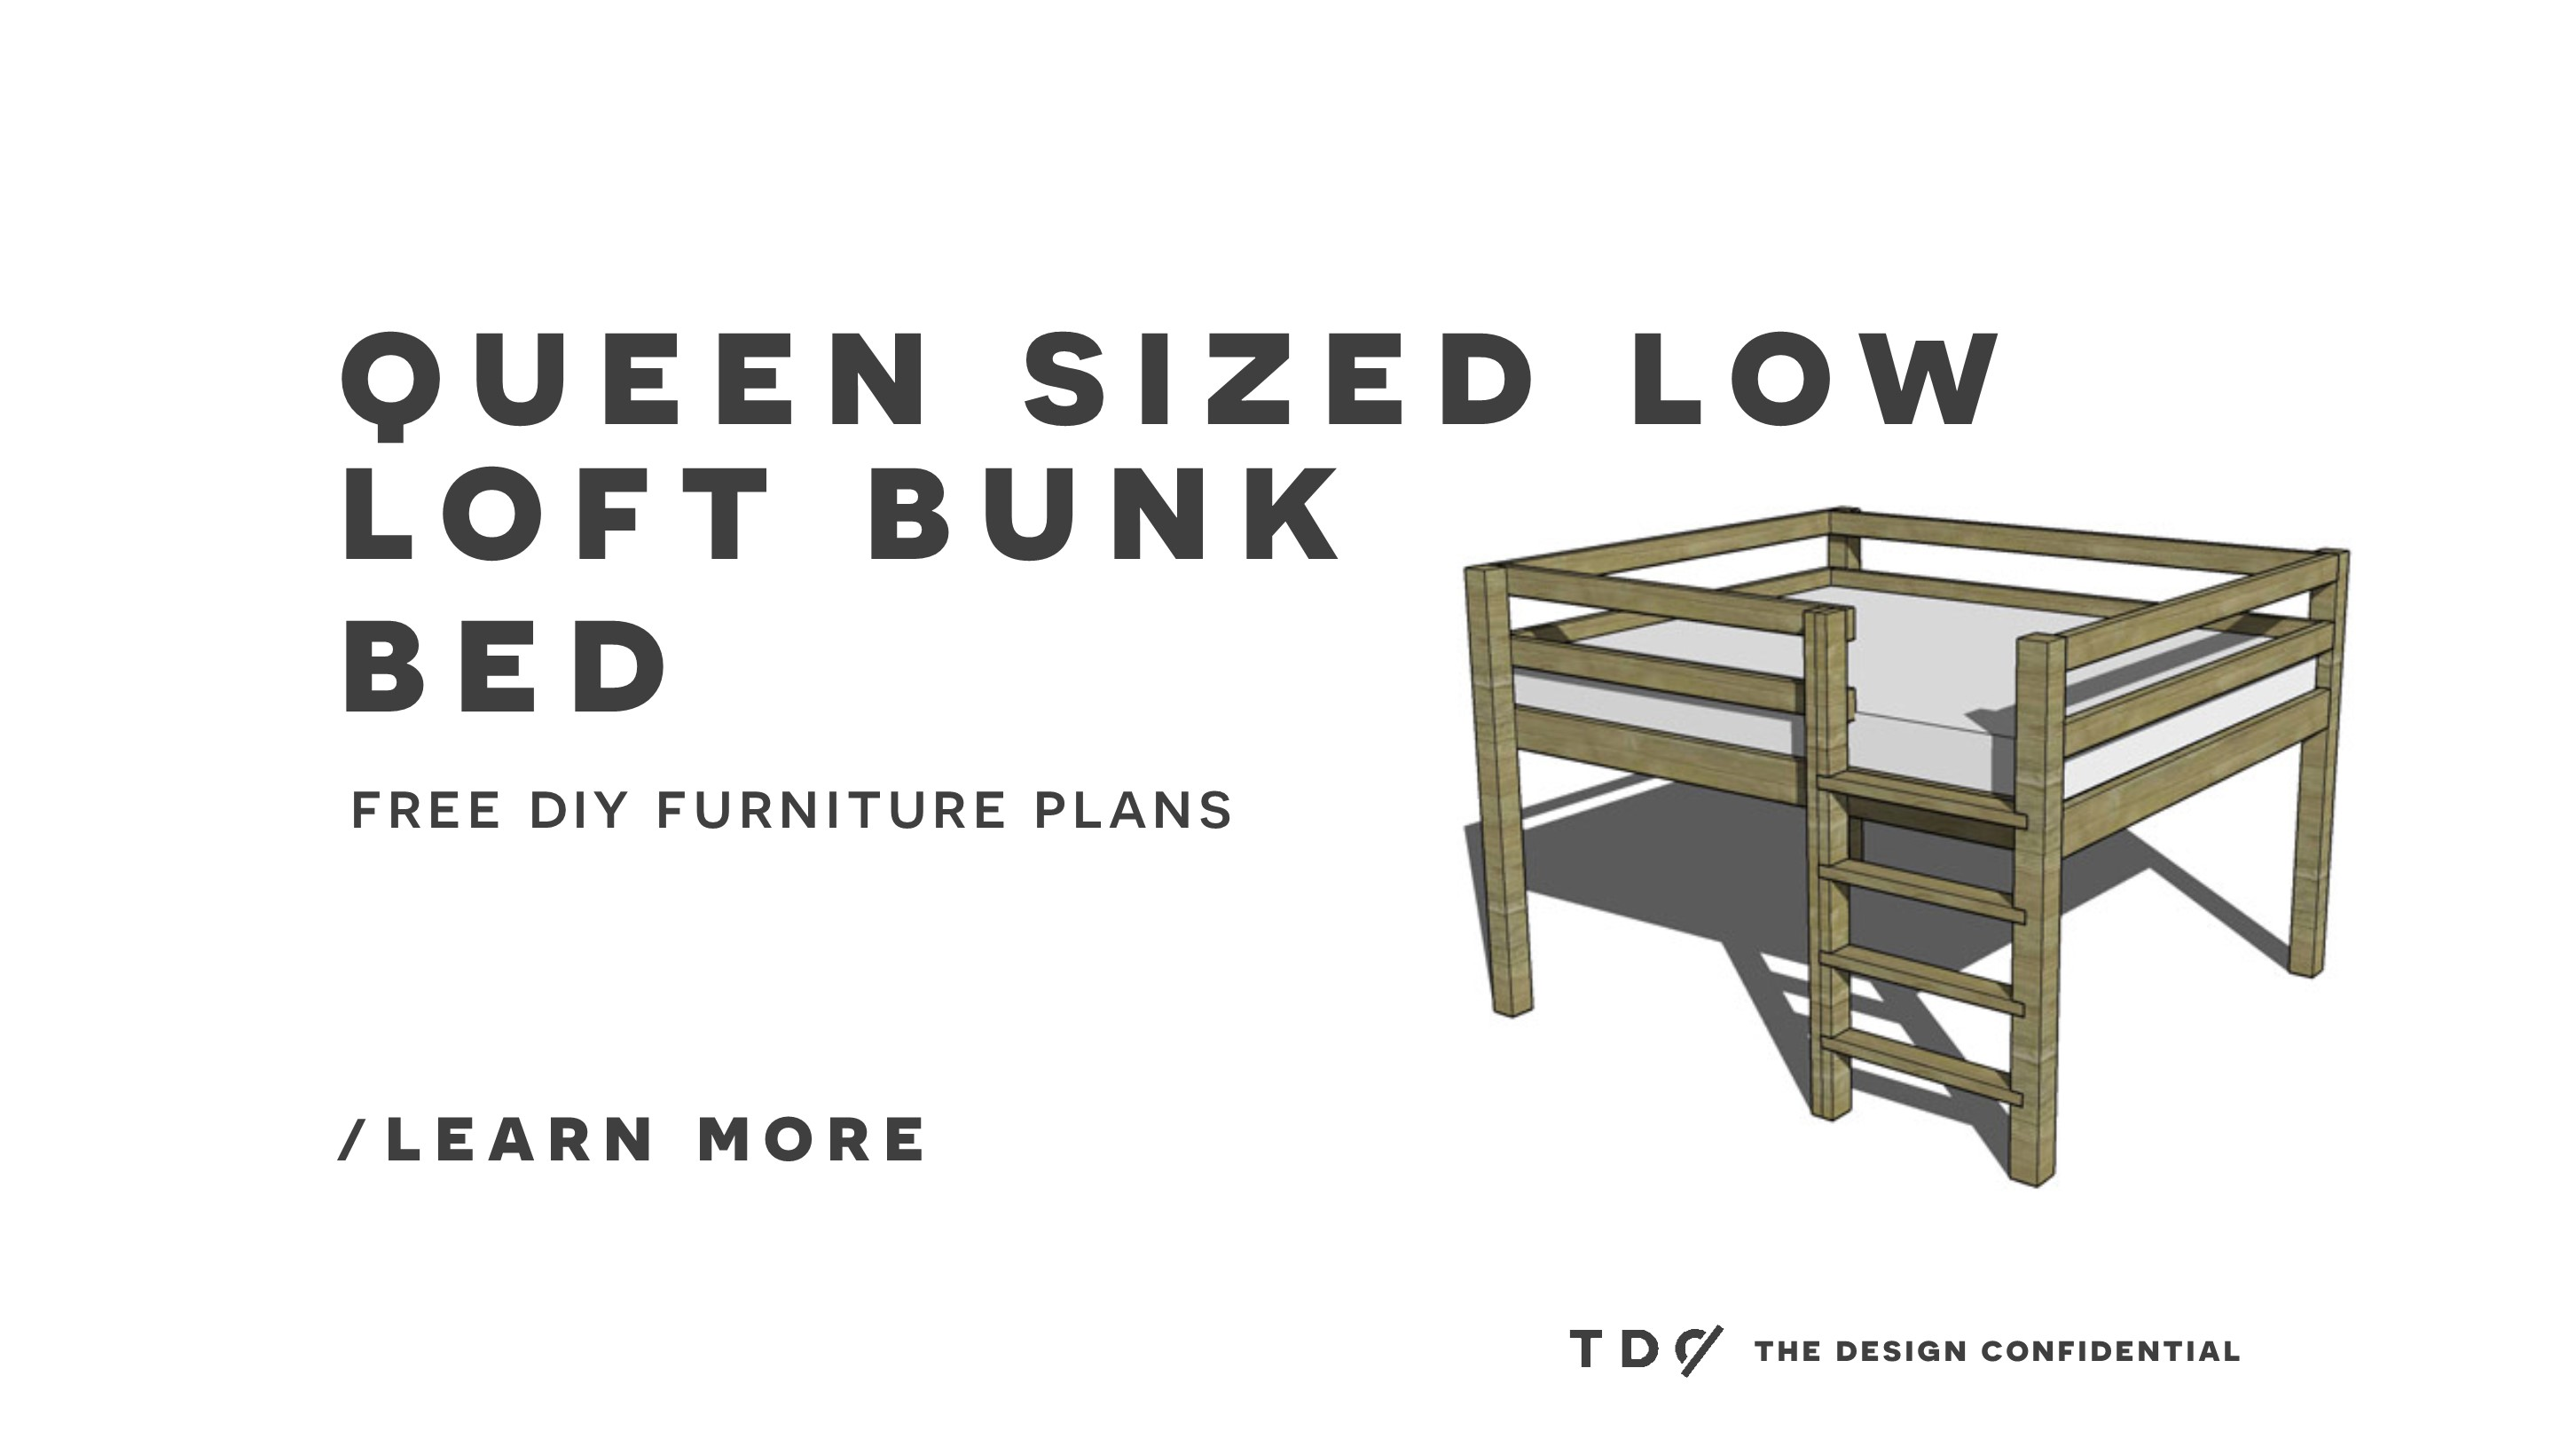 Lovely Free DIY Furniture Plans How to Build a Queen Sized Low Loft Bunk Bed The Design Confidential